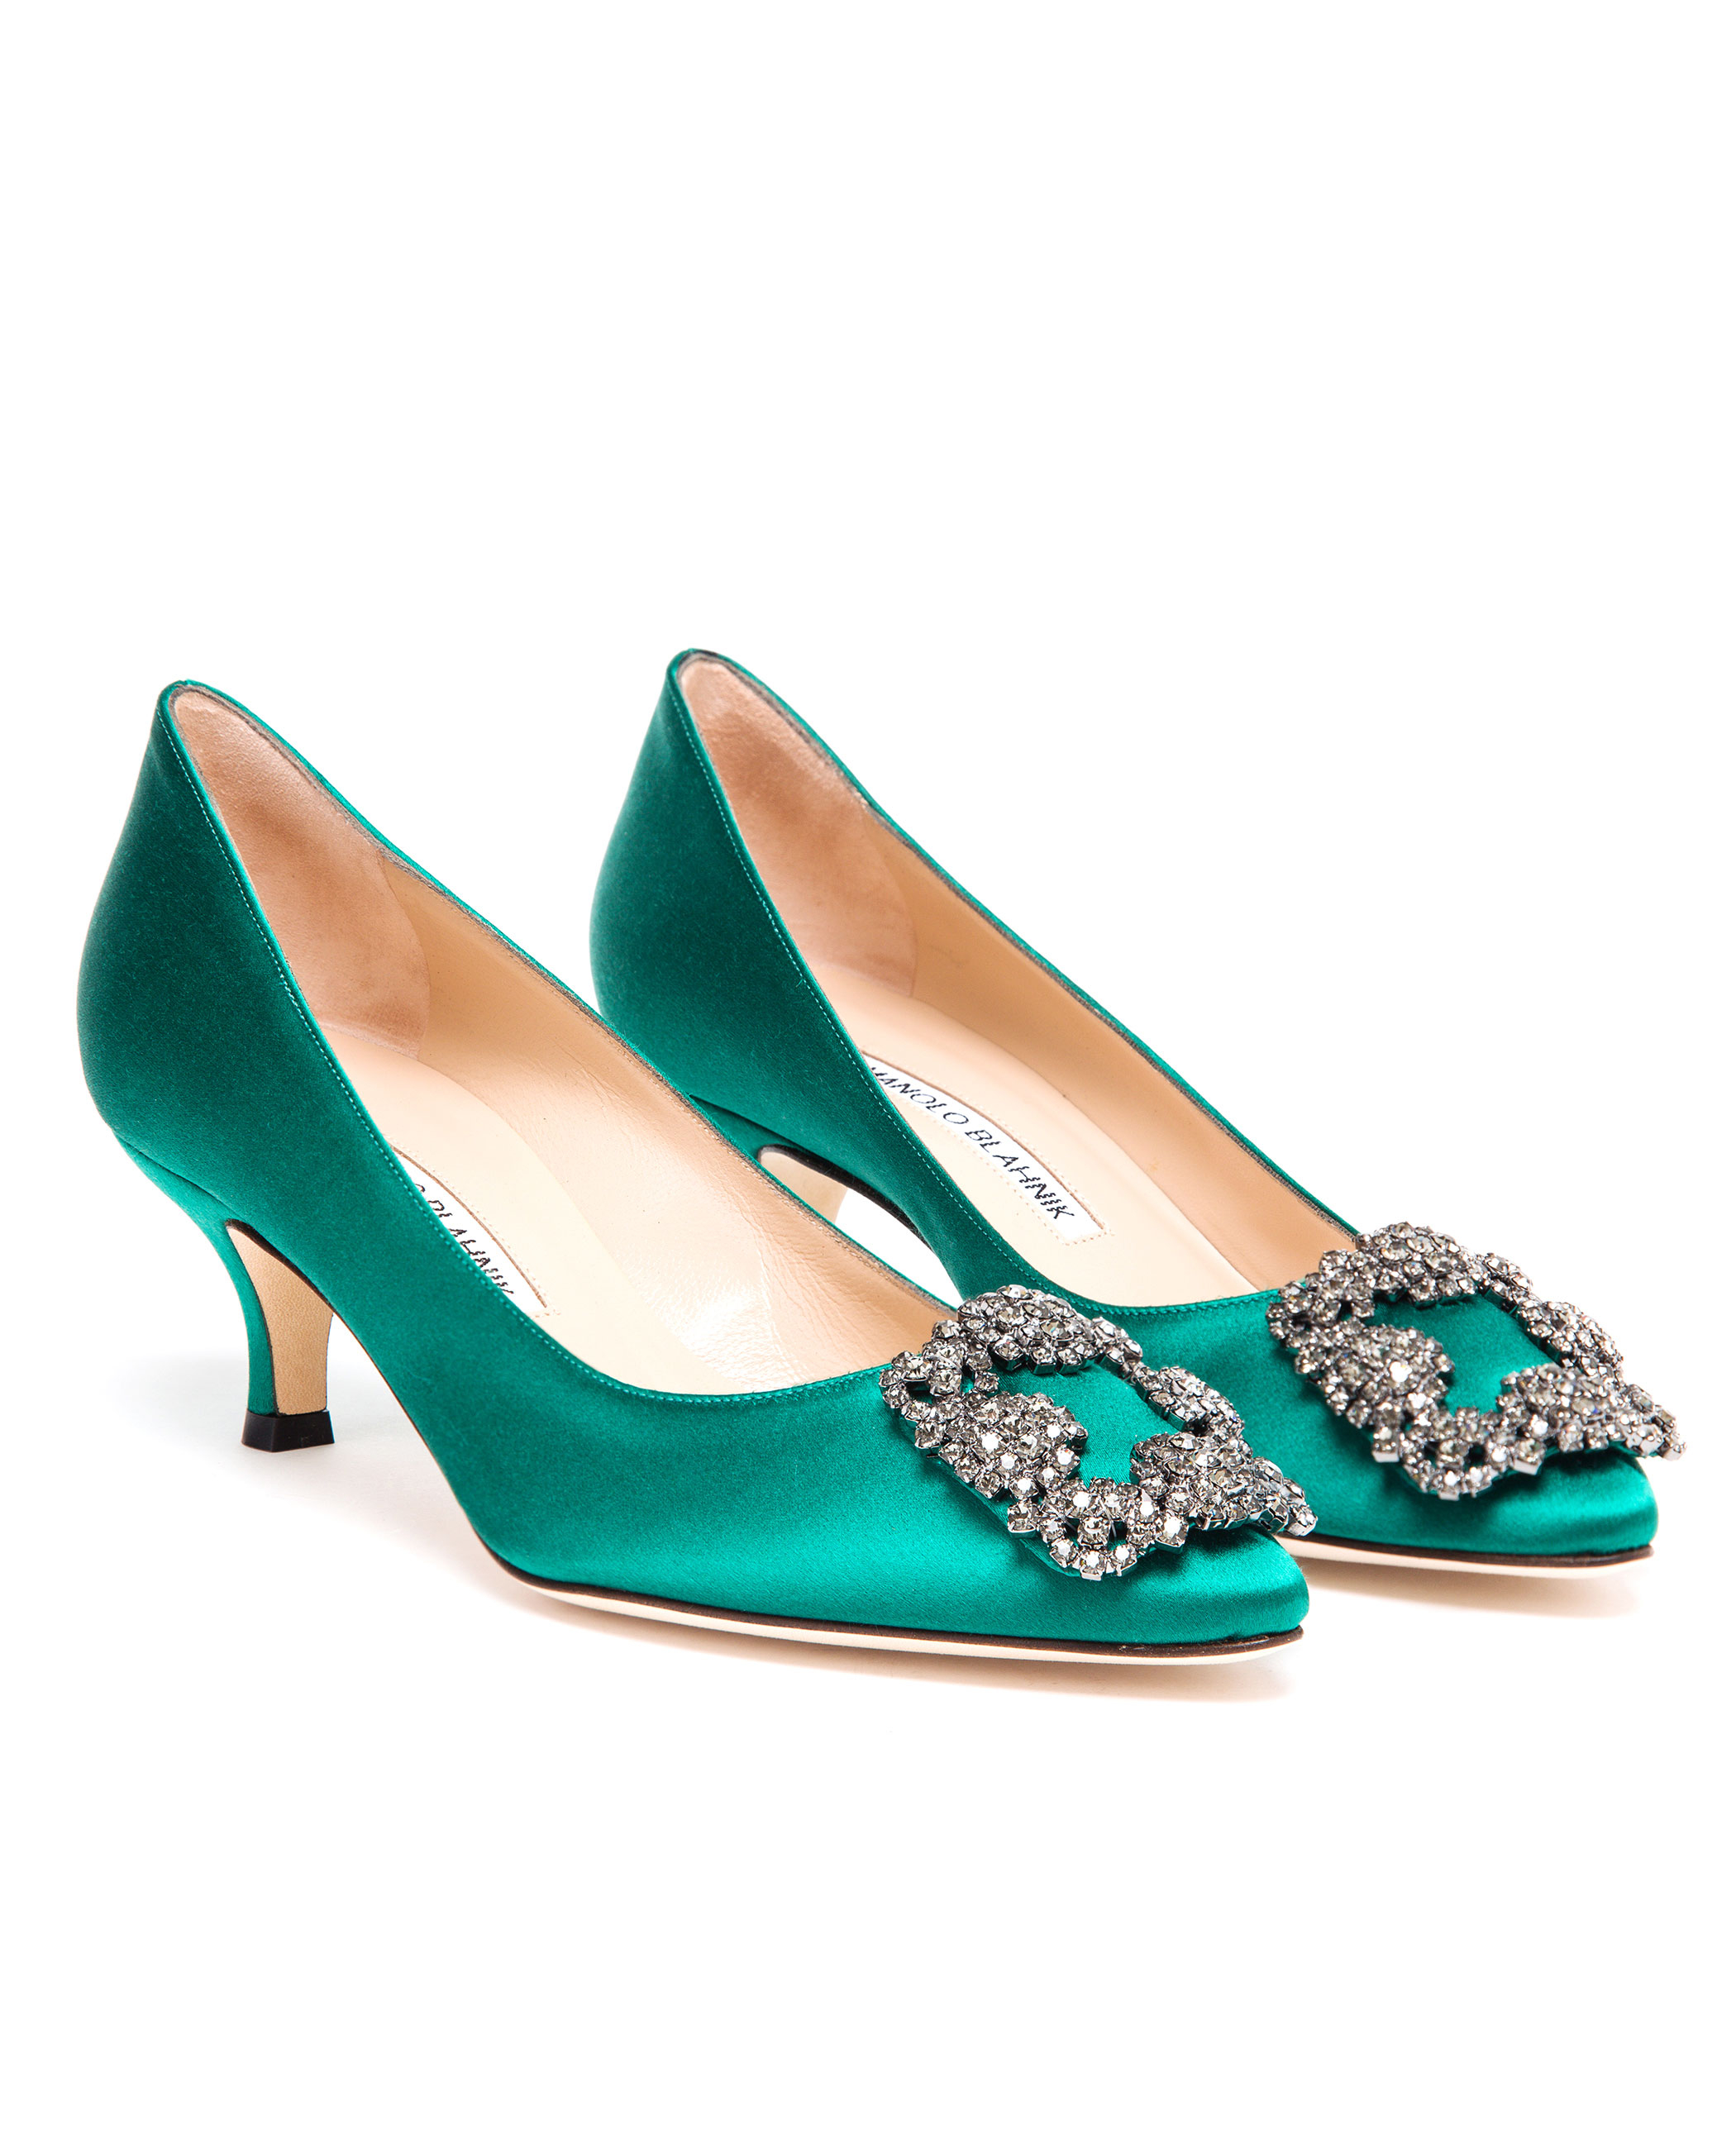 c0f978c73de1 Gallery. Previously sold at  Browns · Women s Manolo Blahnik Hangisi  Women s Two Tone Pumps ...